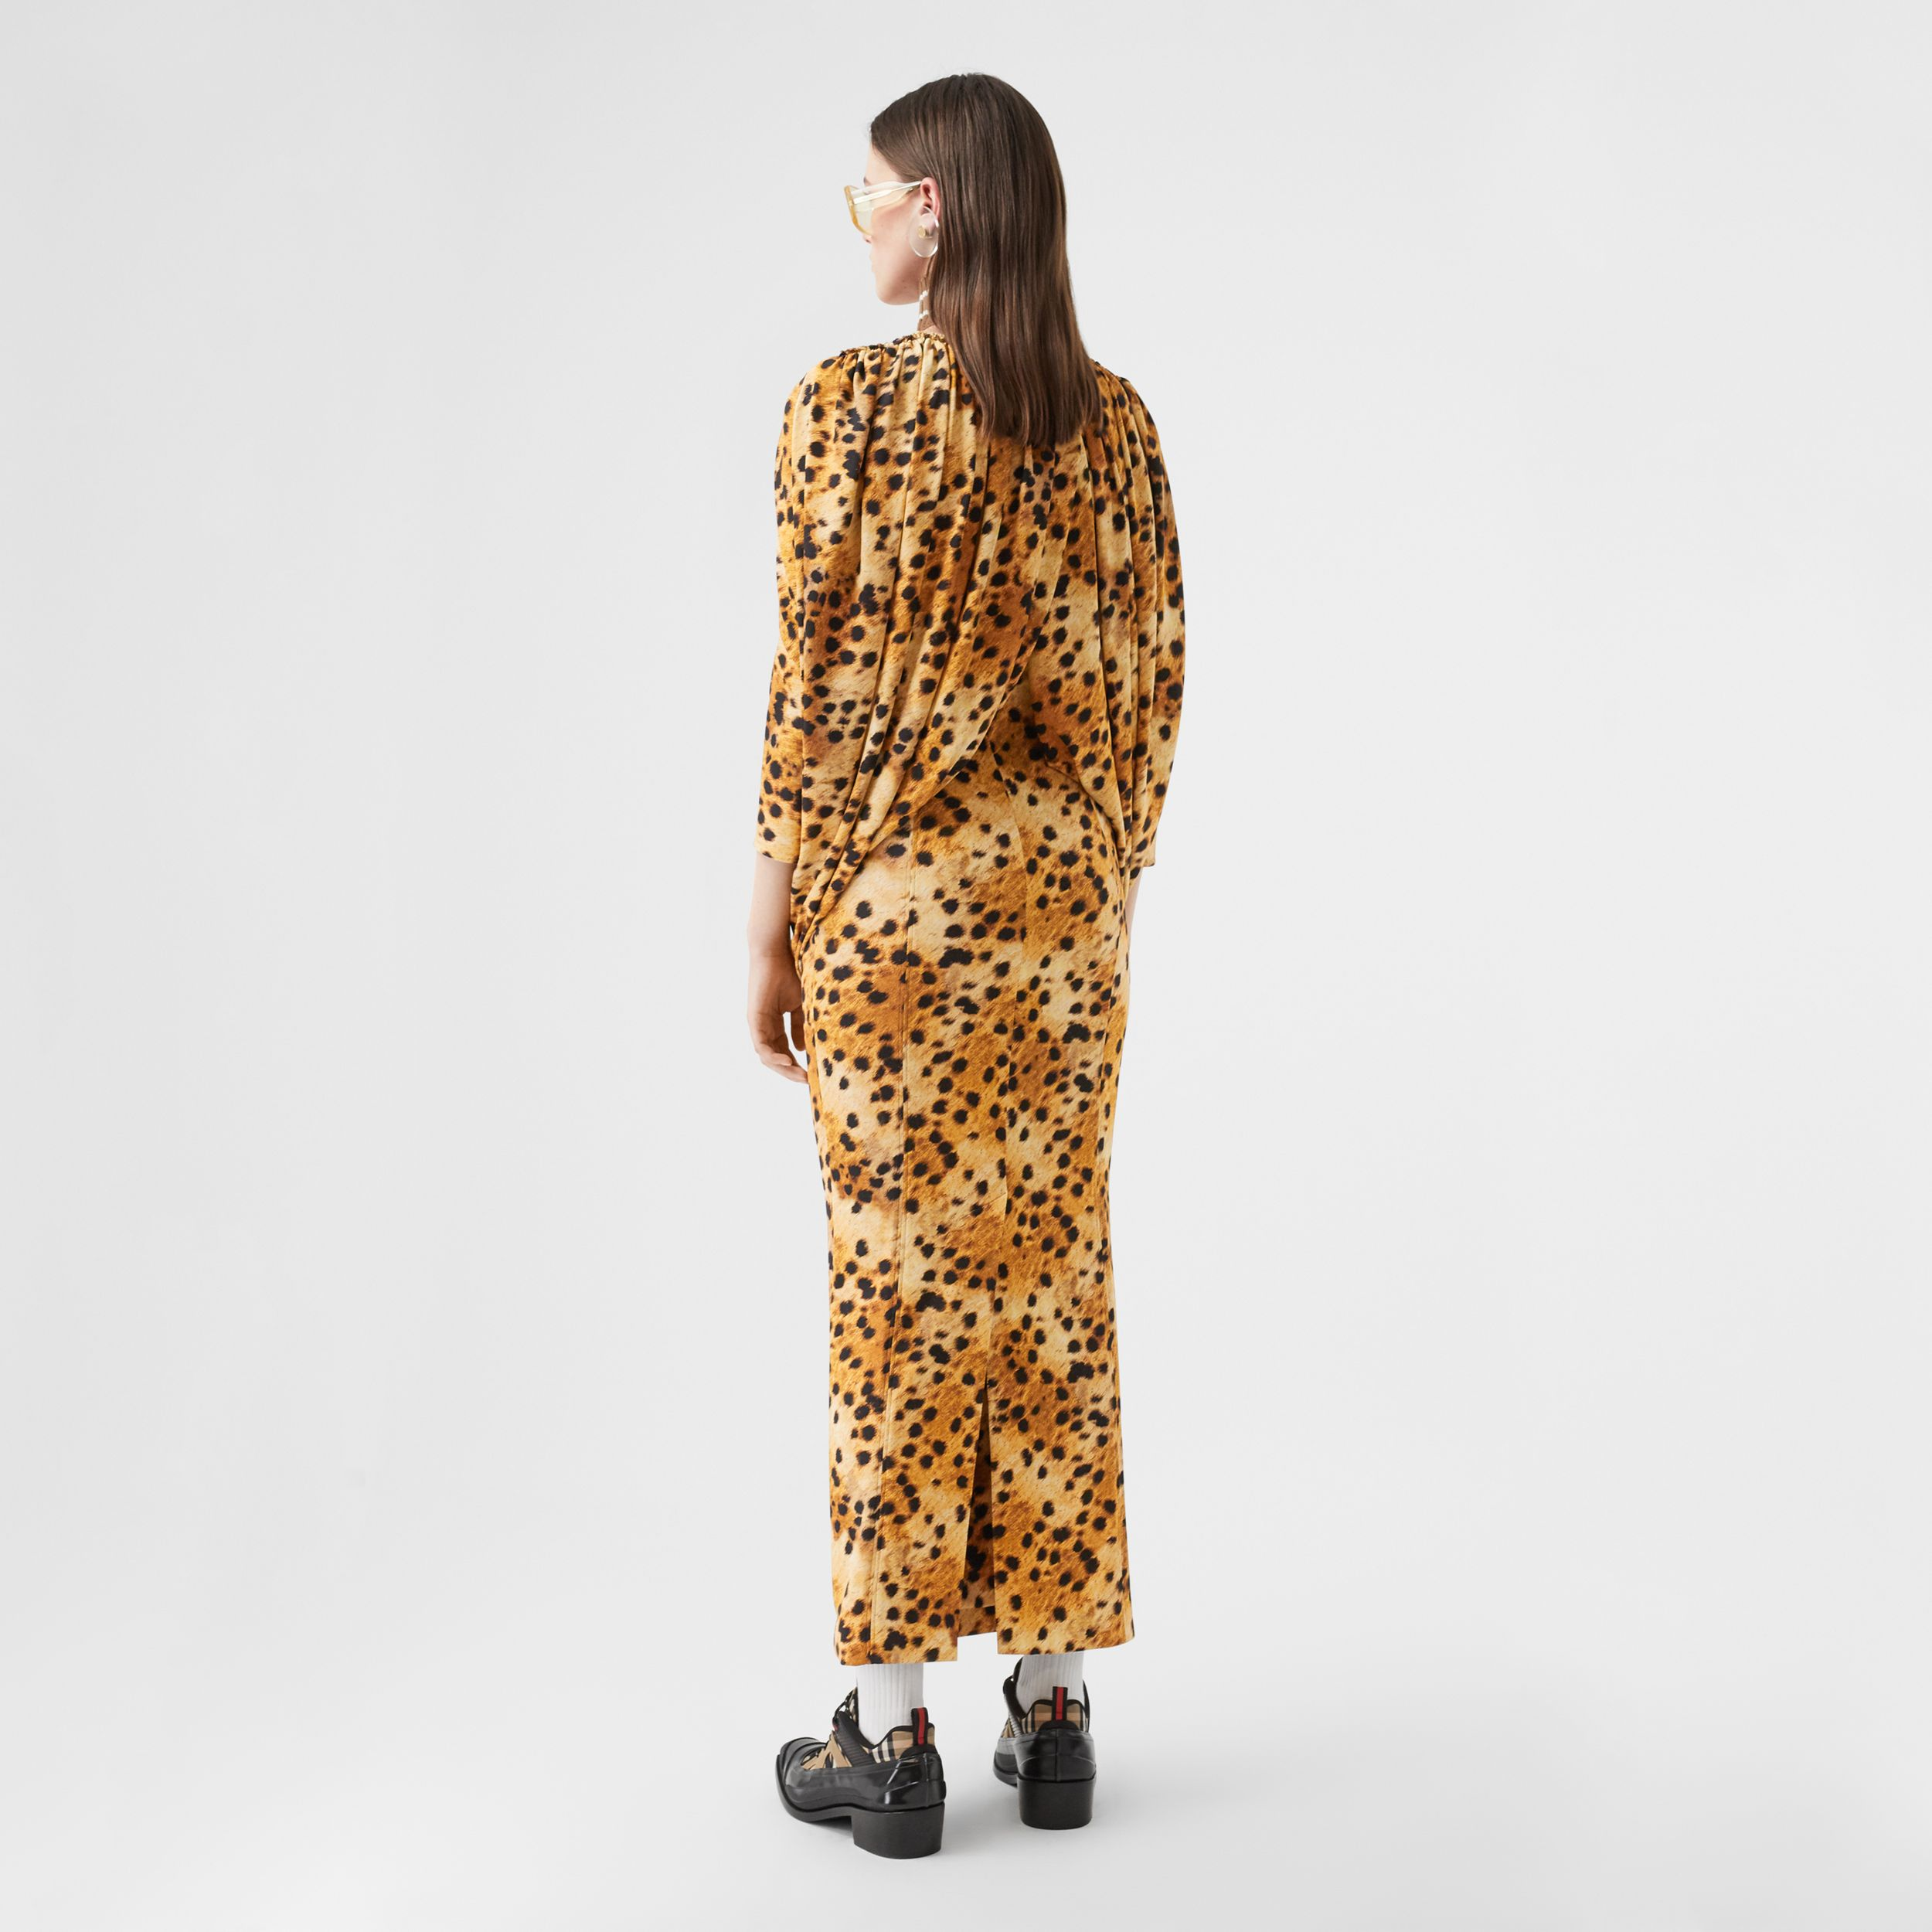 Sash Detail Spotted Monkey Print Dress in Nutmeg - Women | Burberry - 2